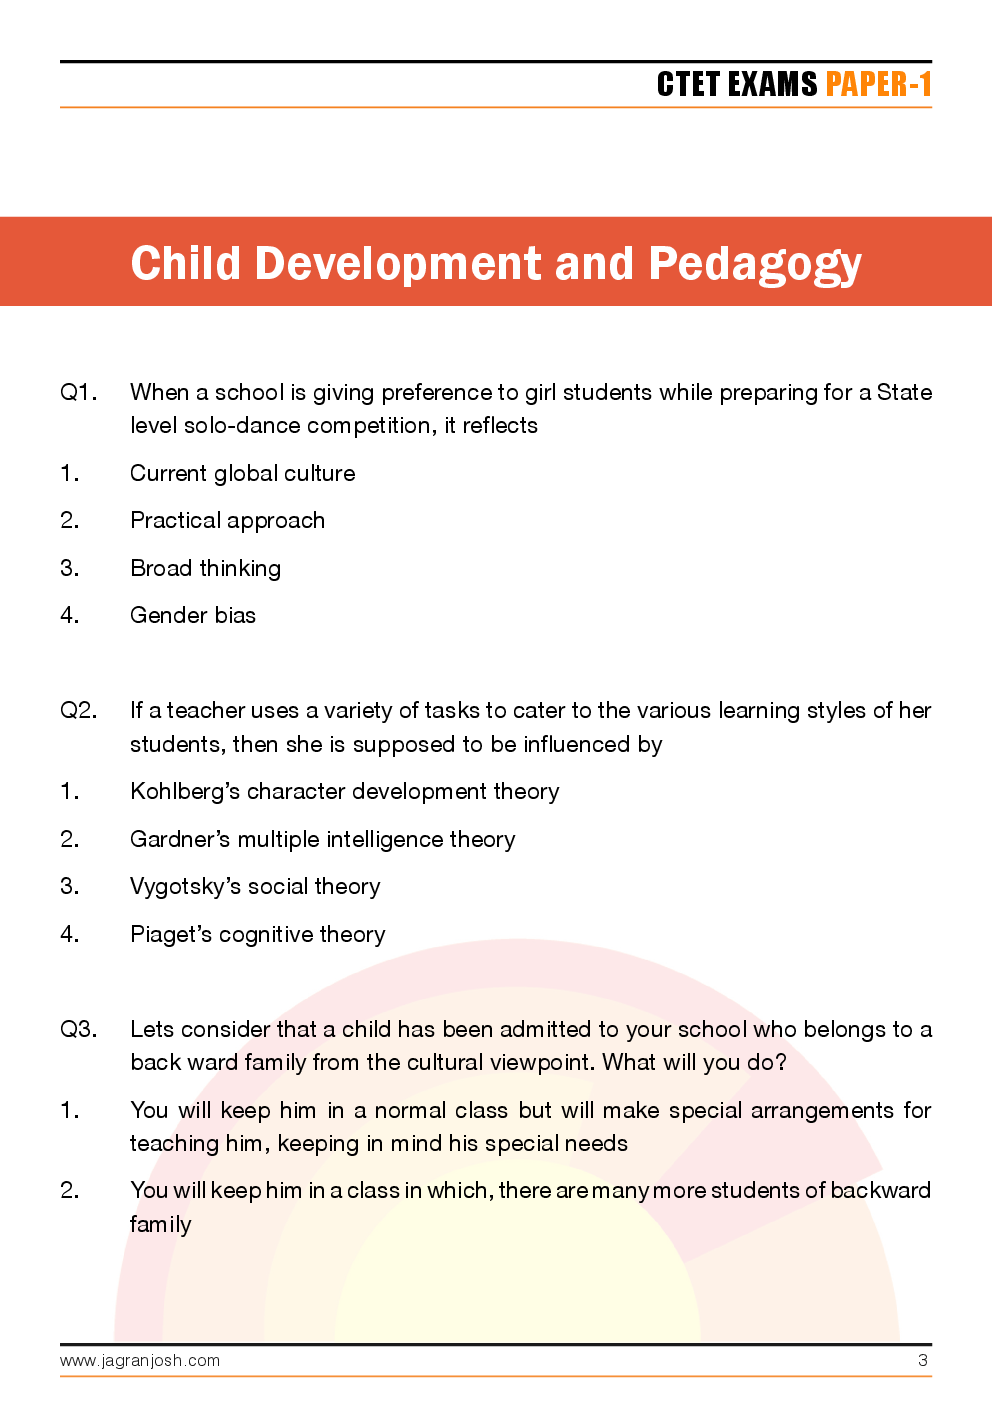 CTET Paper-1 Solved Questions and Answers - Page 3